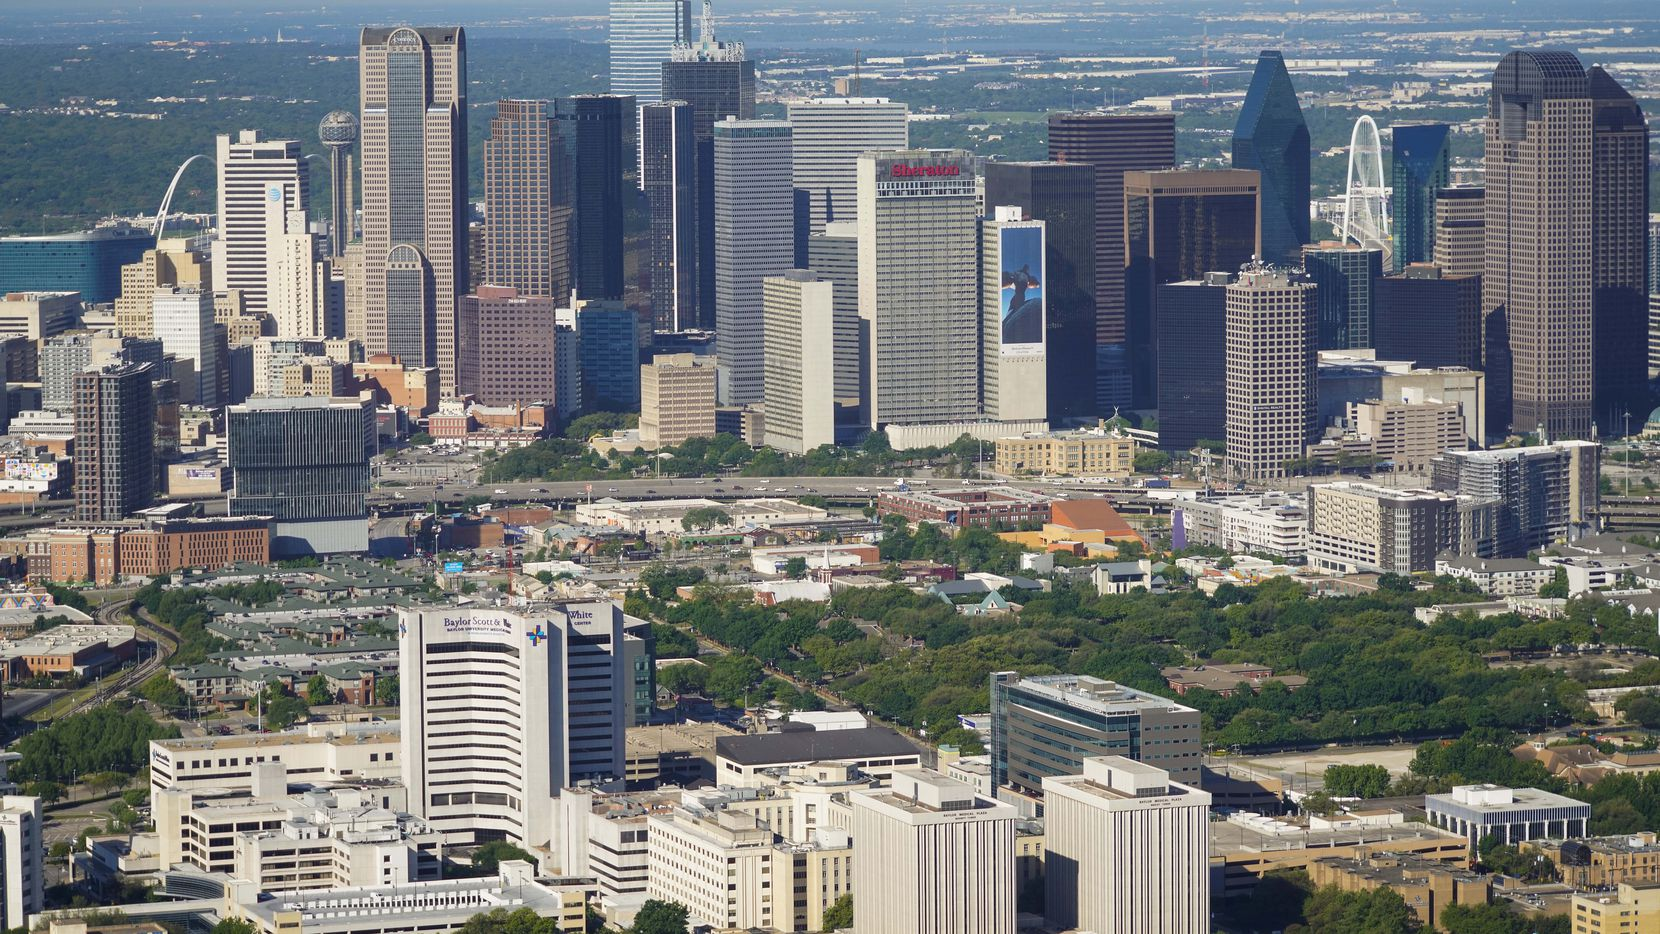 An aerial view of the downtown Dallas skyline with the Baylor University Medical Center in the foreground.